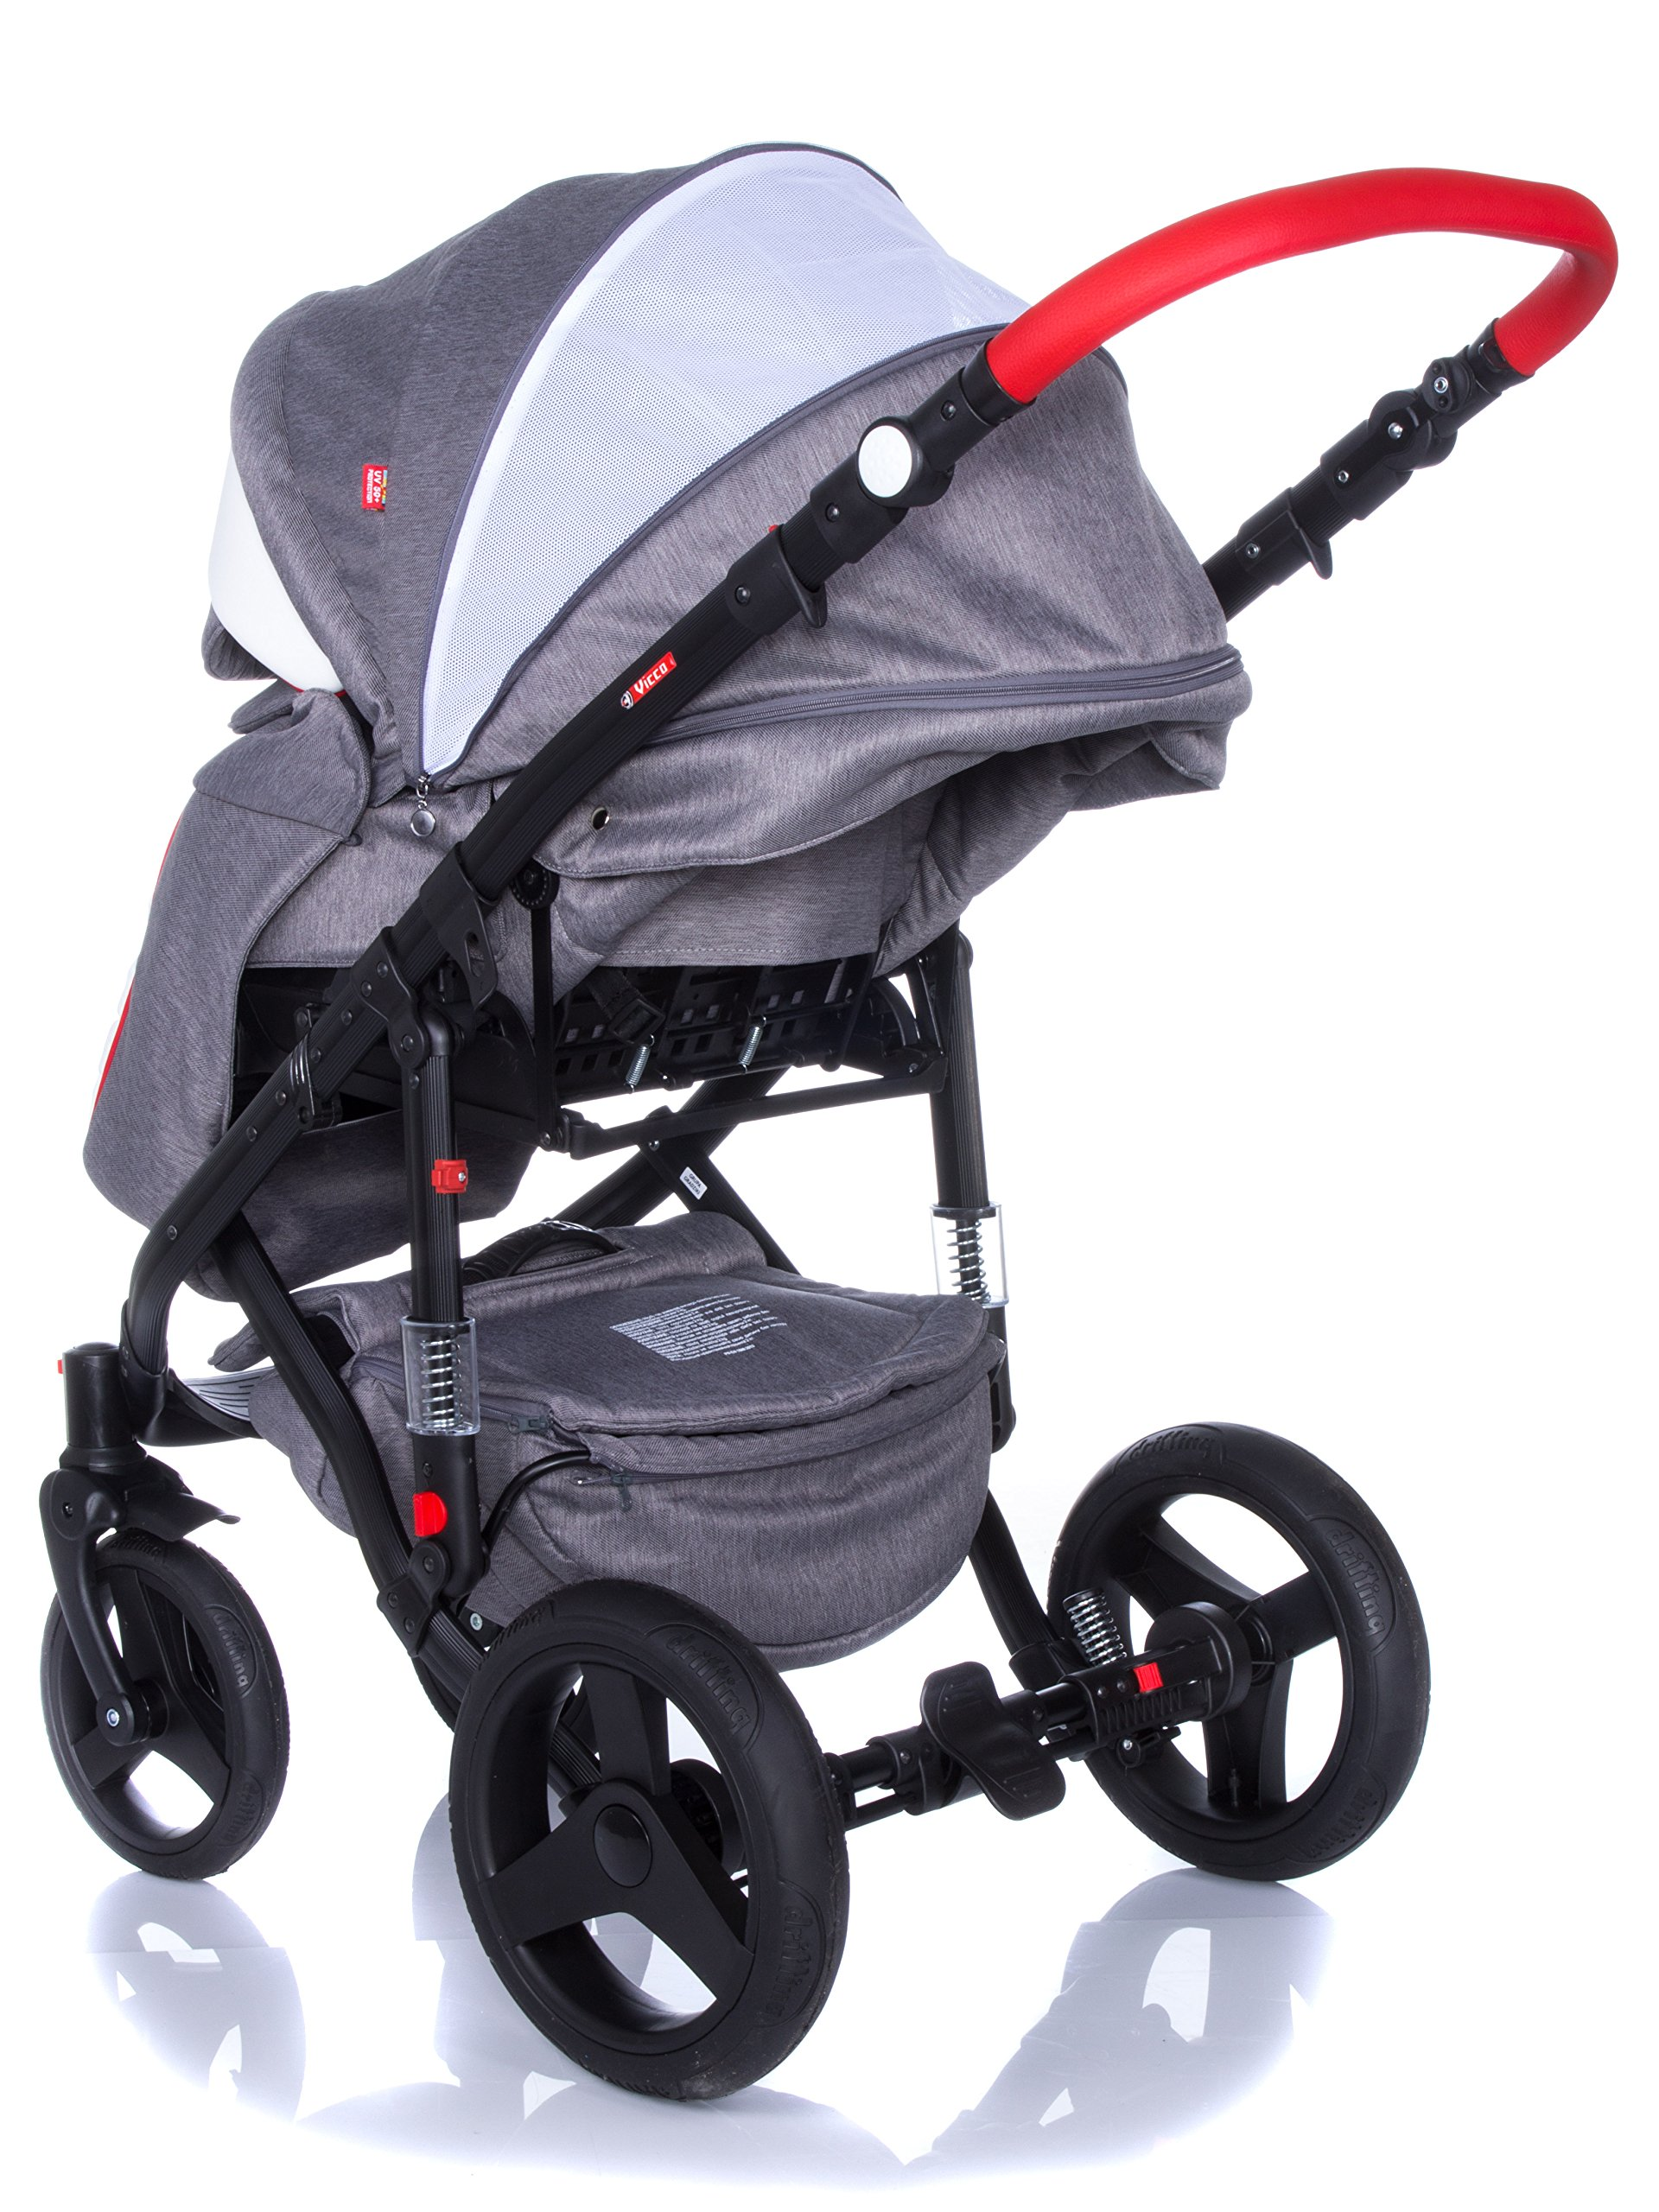 Baby Pram Pushchair Stroller Buggy Travel System Set Adamex Vicco + Baby Bag + Rain Cover + Mosquito Net + (2in1, R2 Red Graphite) Adamex Lockable swivel wheels and lockable side suspension system Light alluminium chassis with gel wheels 50% Ecco Leather and 50% Polyester shell 7